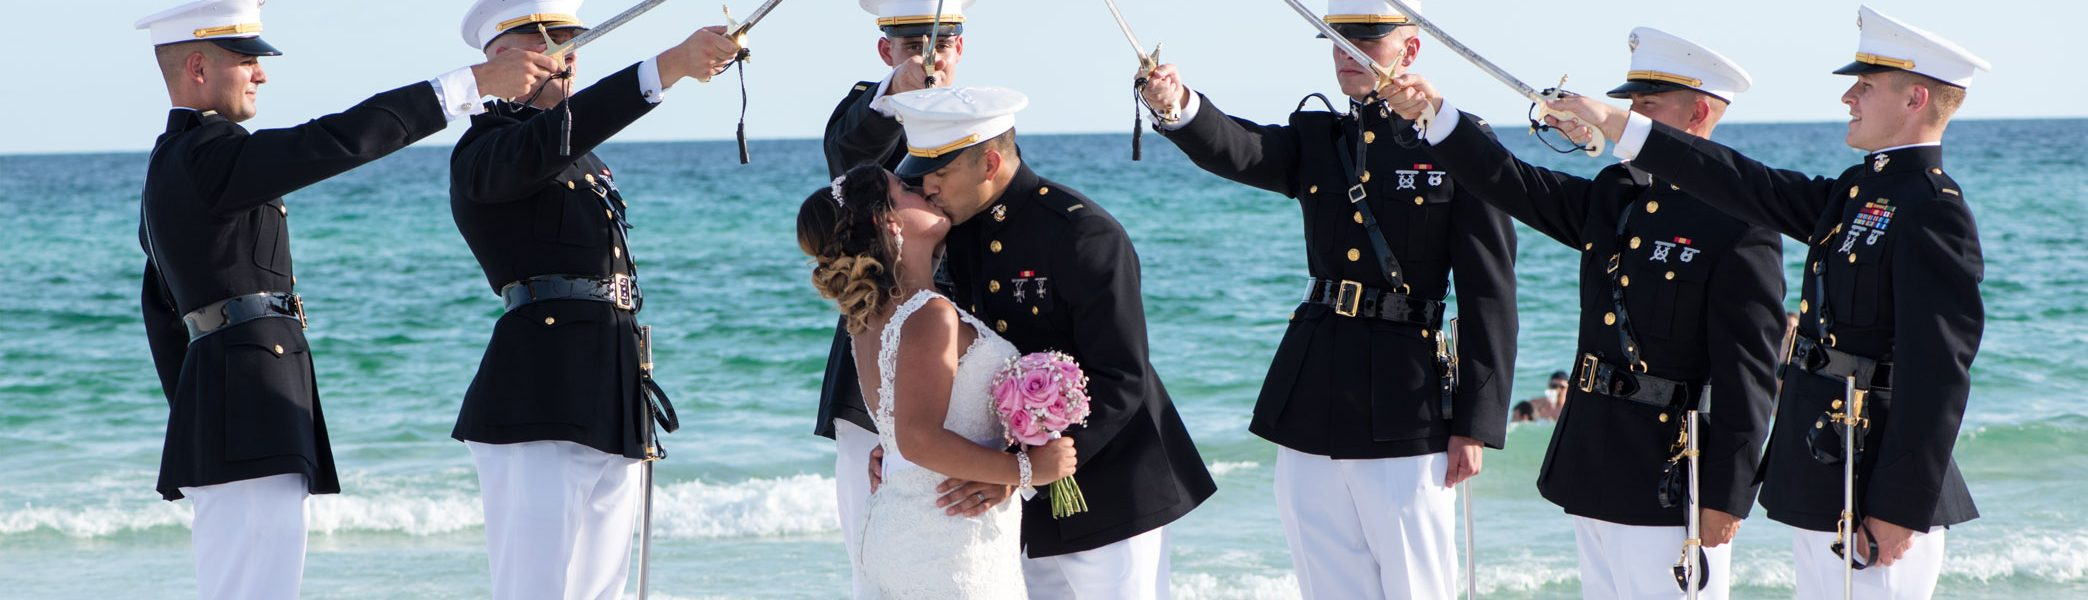 Marines holding swords over married couple during Destin Beach Wedding